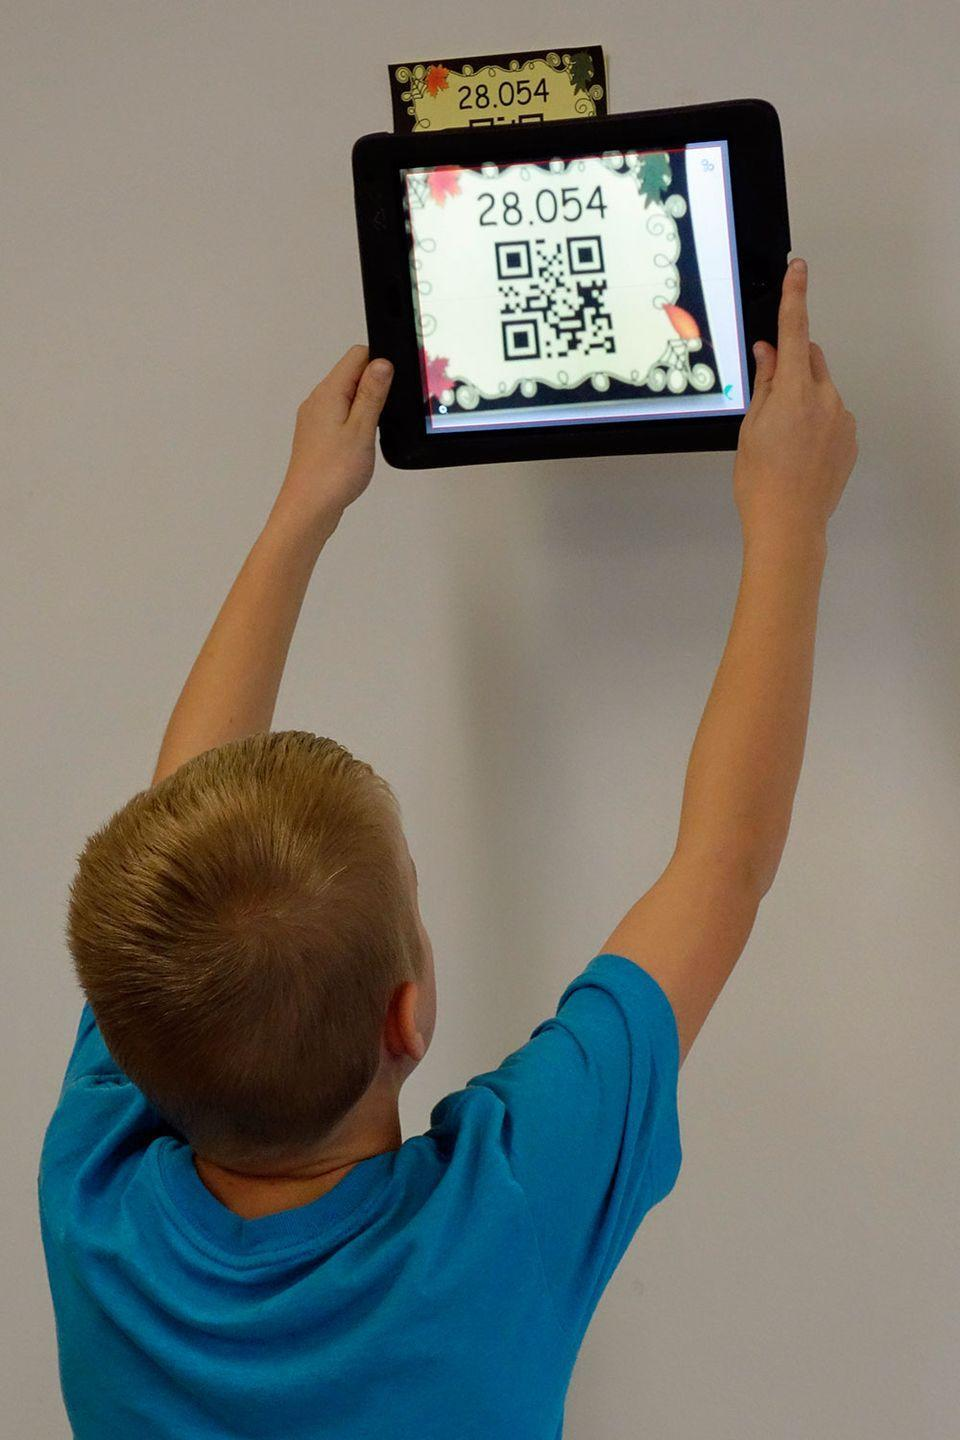 <p>A student uses an iPad to scan a QR code during an exercise in math class. </p>